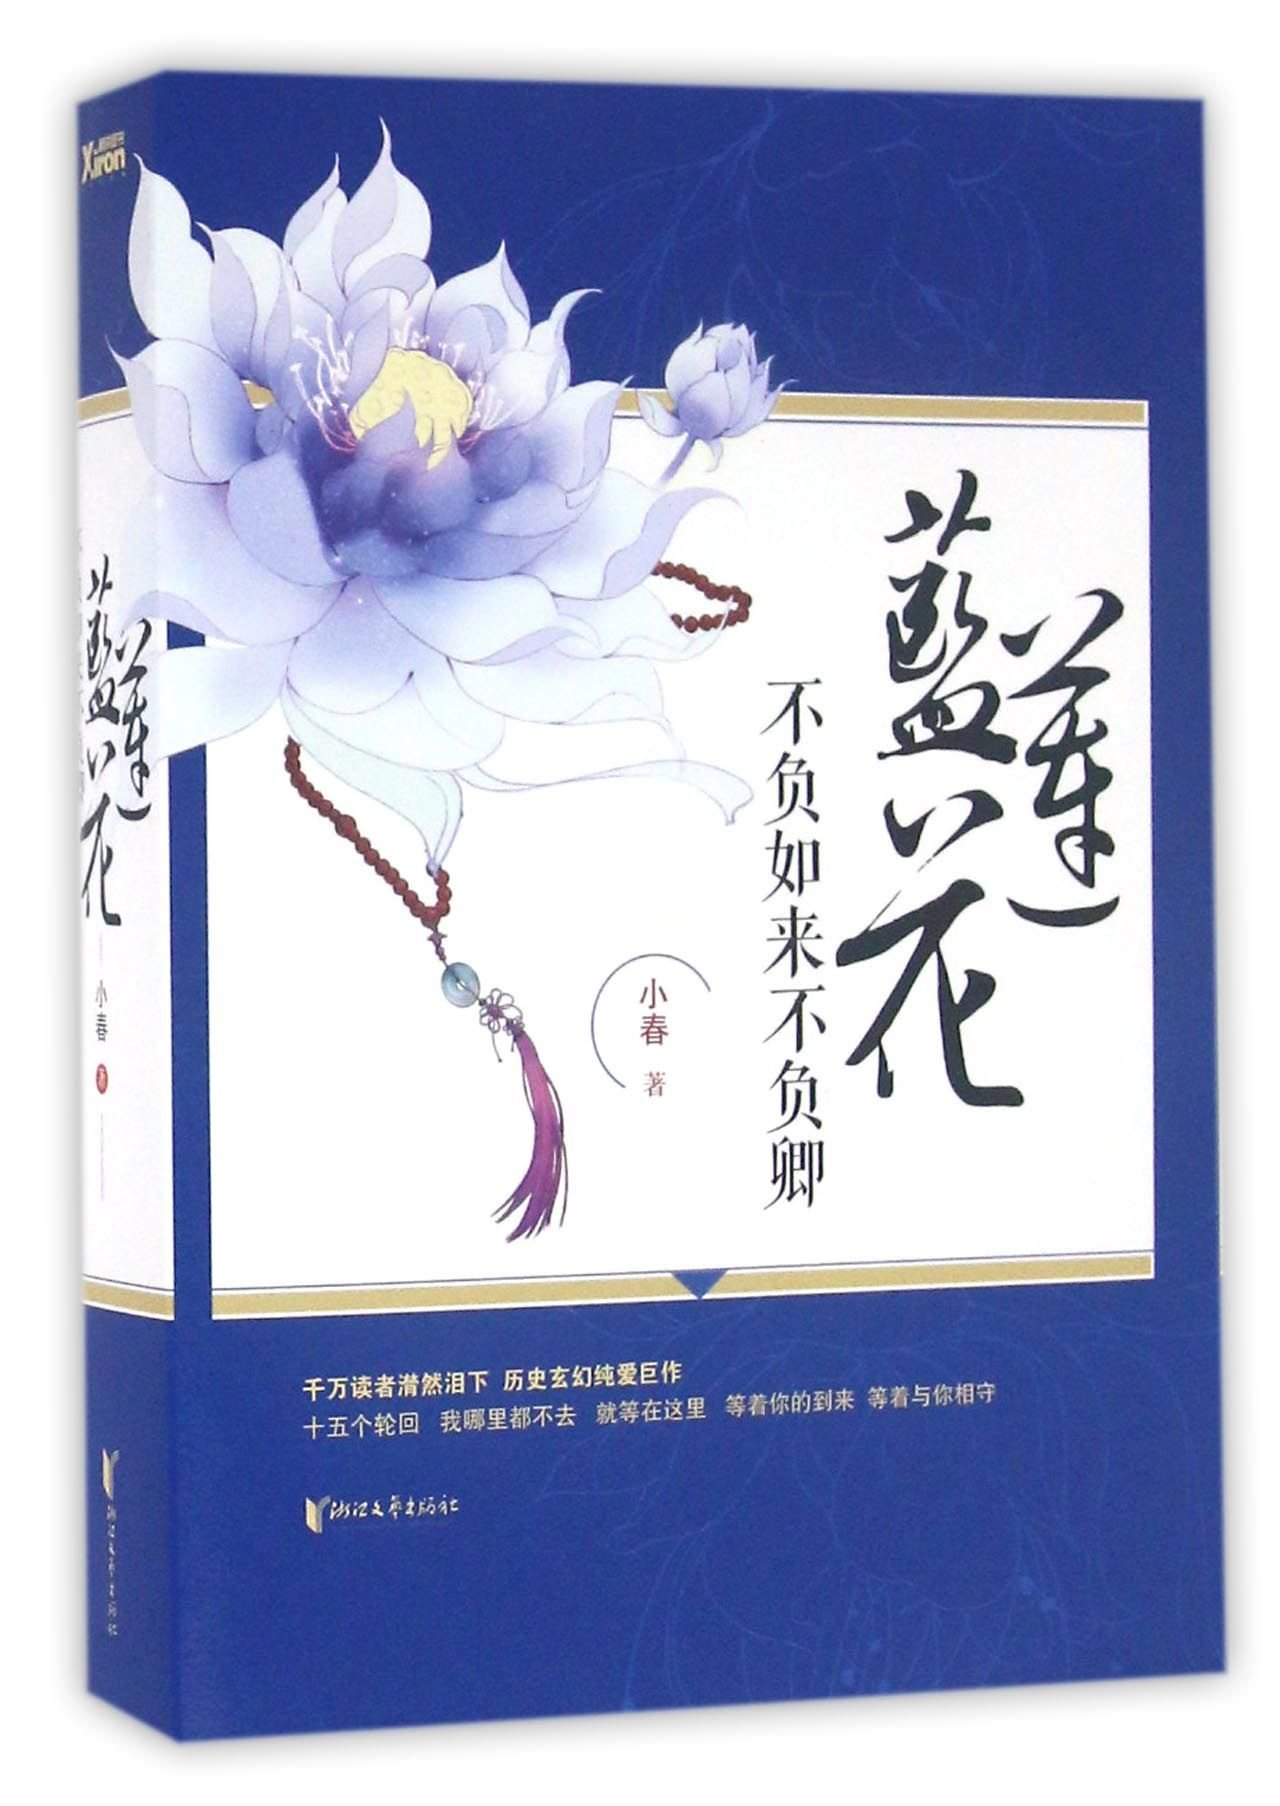 Read Online The Blue Lotus (Never Let You or Buddha down - I&II) (Chinese Edition) PDF